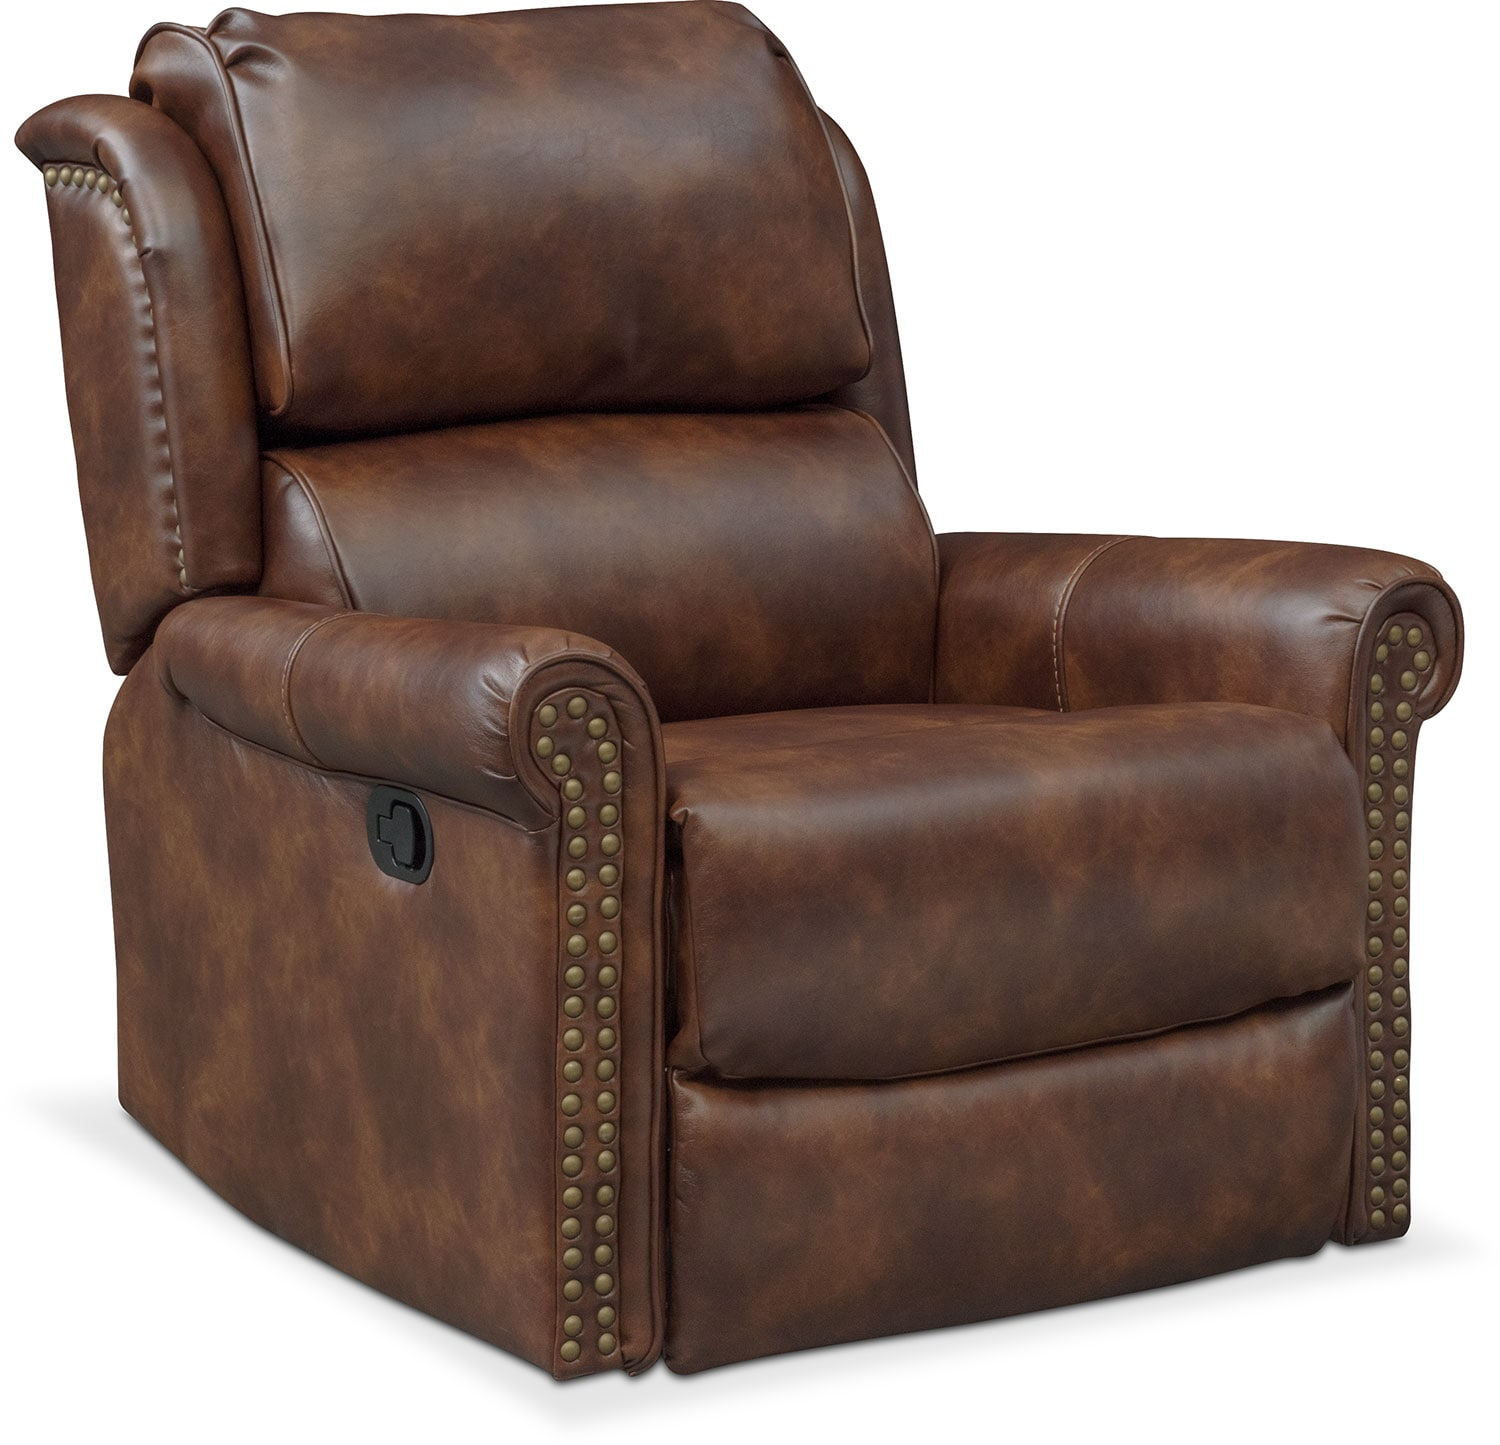 Courtland Glider Recliner - Pecan  sc 1 st  Value City Furniture : art of care recliner - islam-shia.org